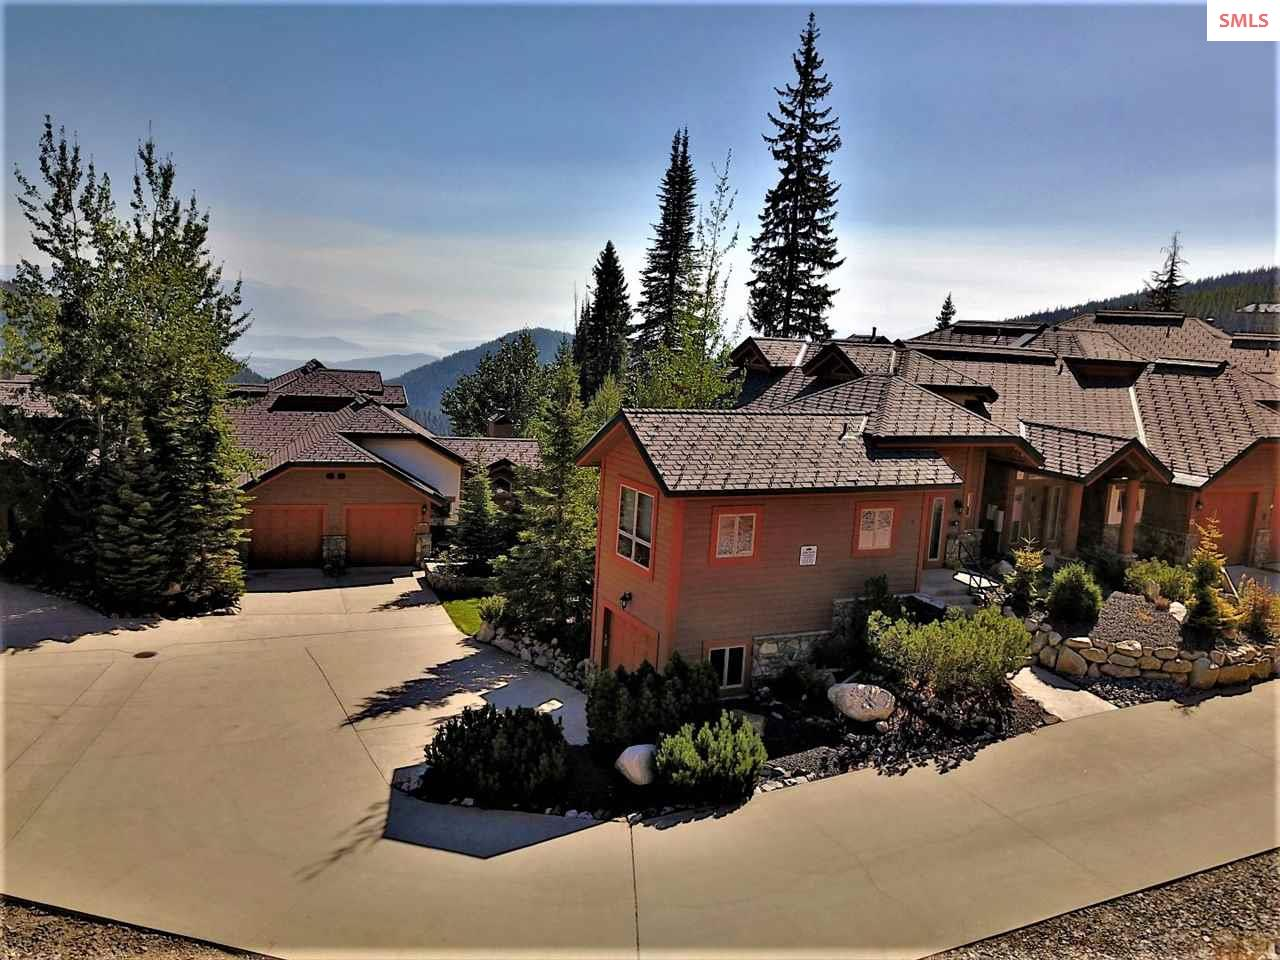 Townhouse for Sale at 39 The Glades 39 The Glades Sandpoint, Idaho 83864 United States